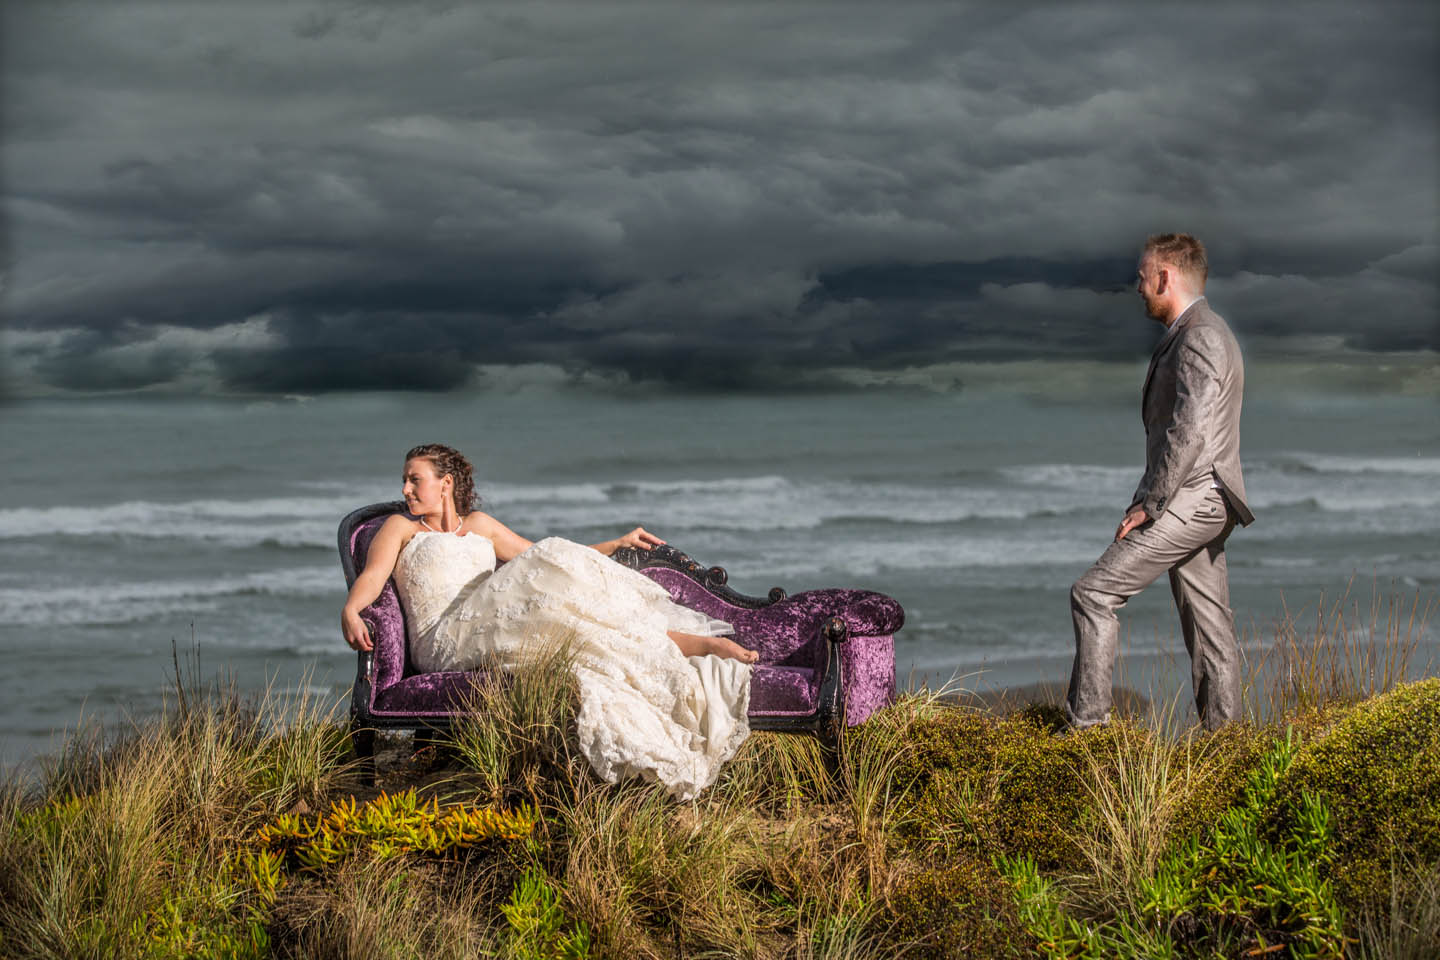 bride on a purple French chaise lounge and a approaching storm